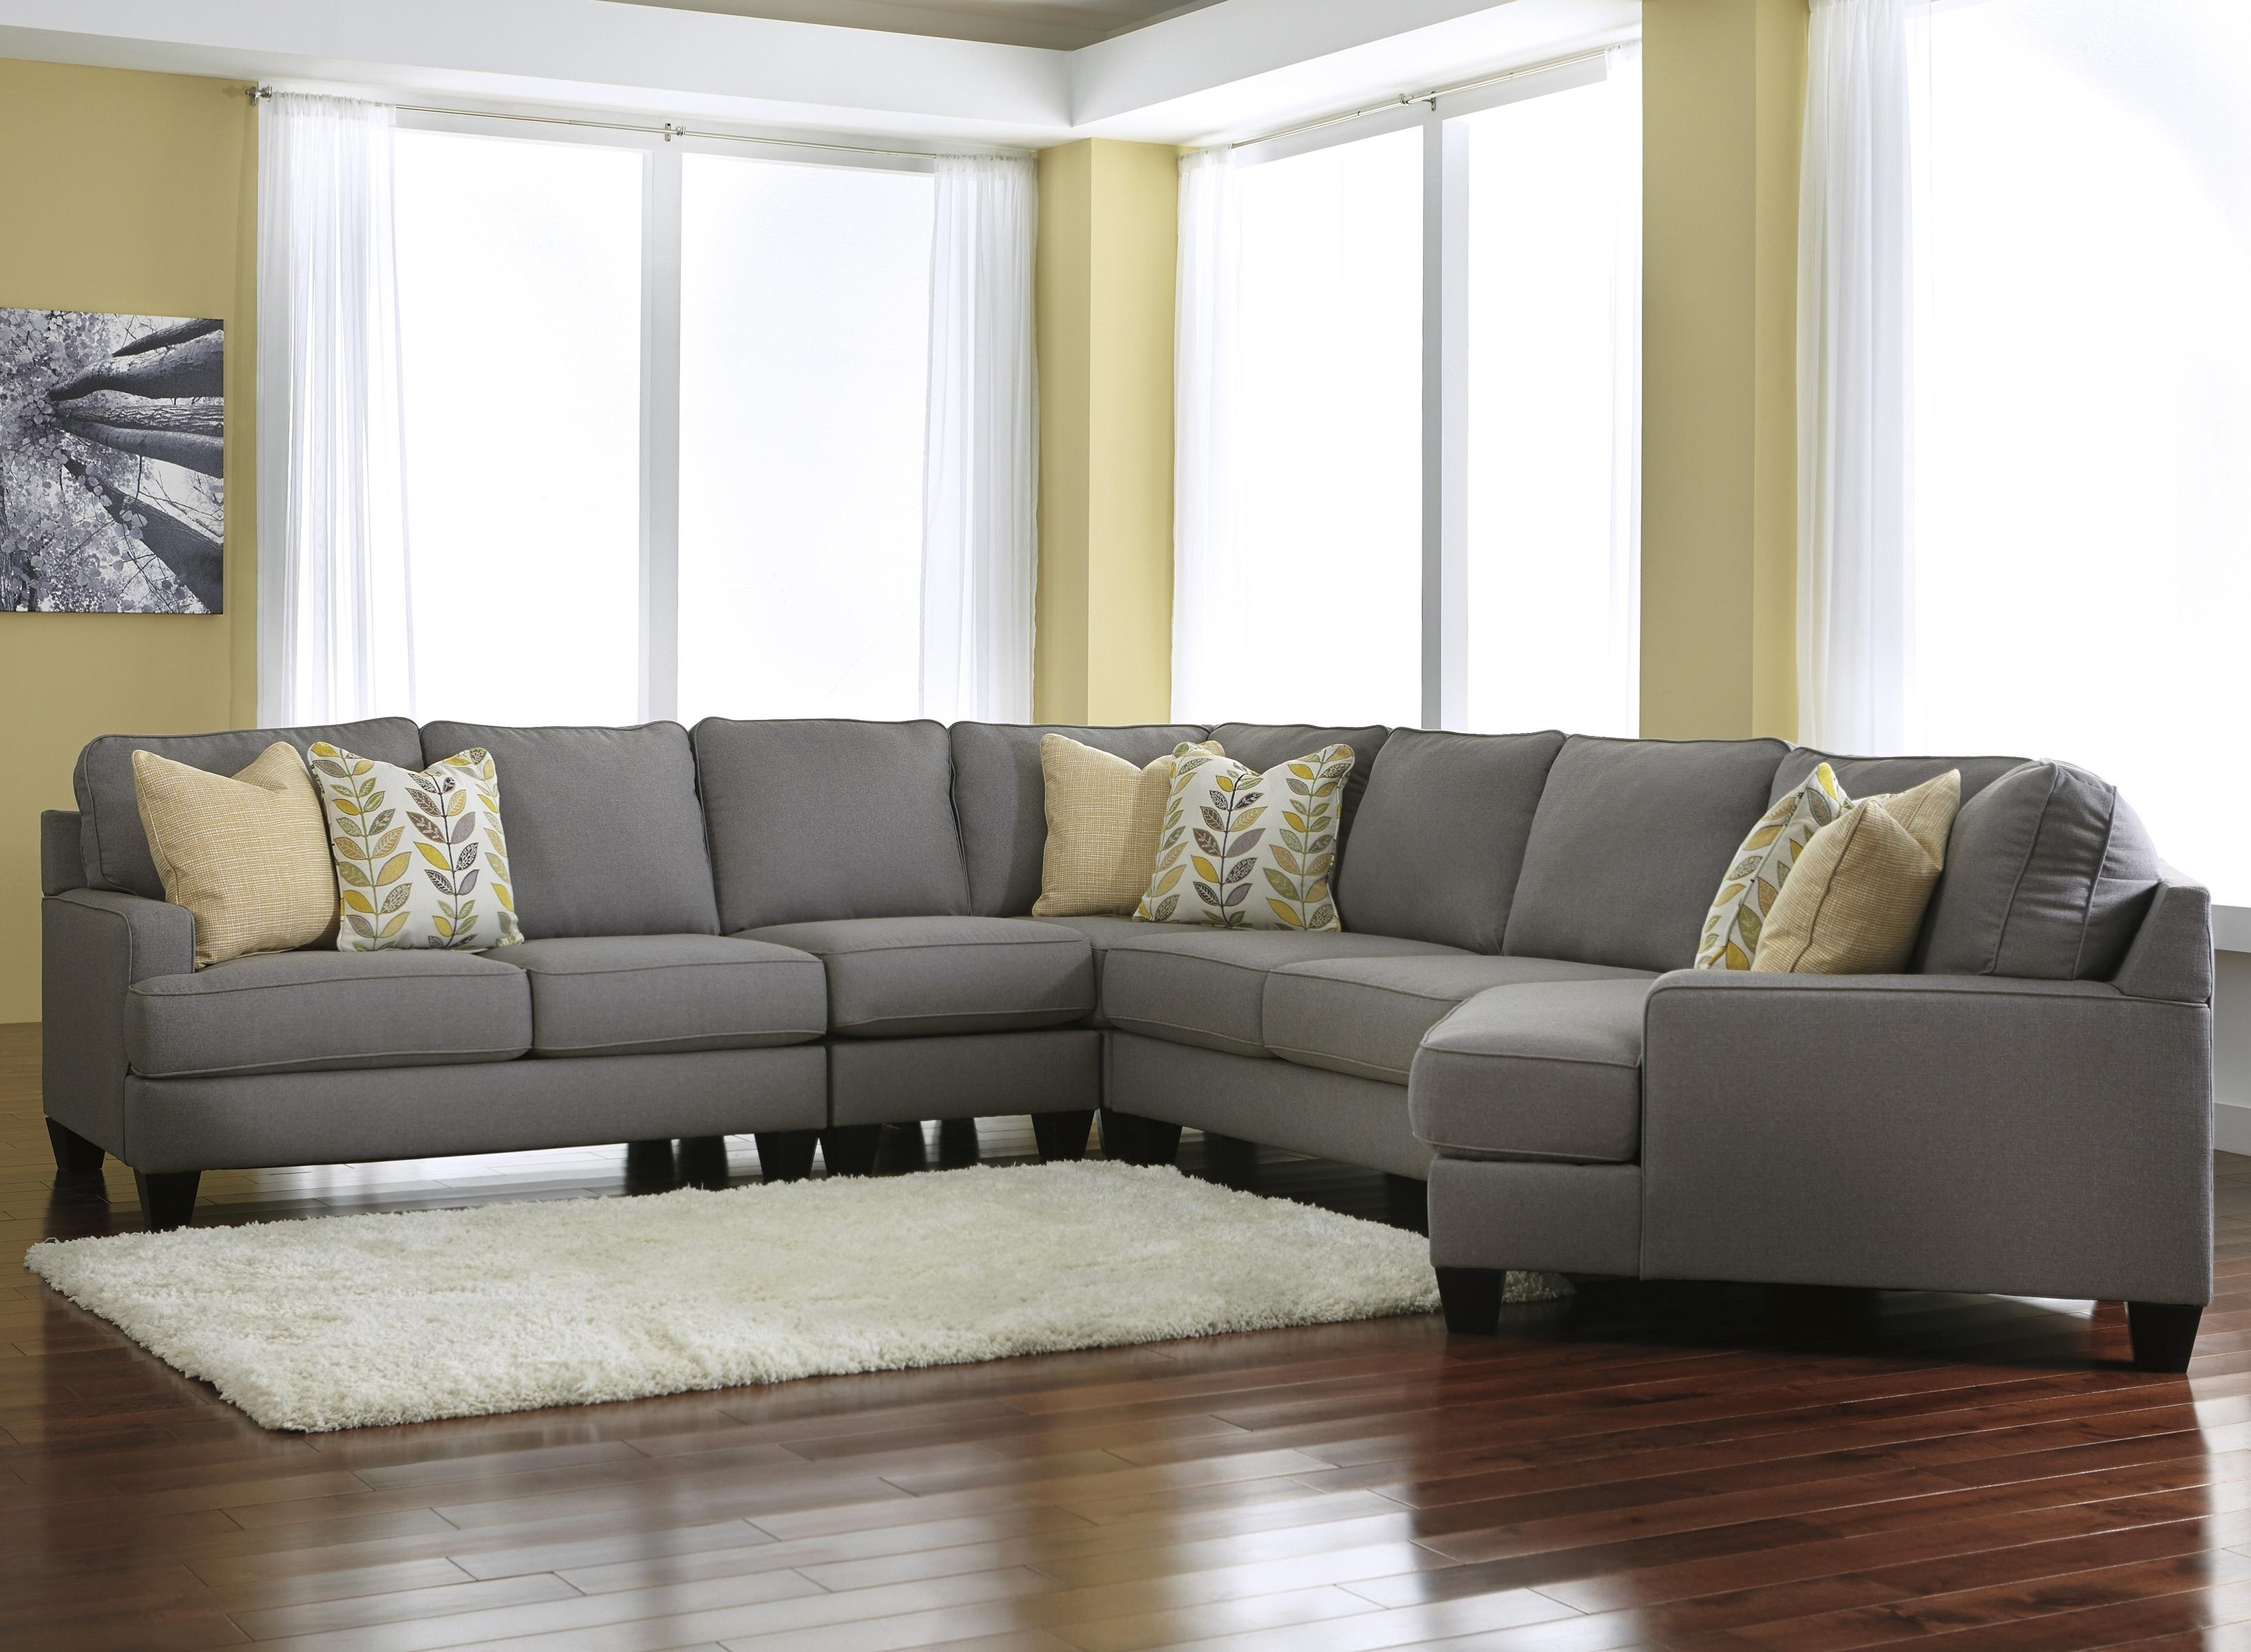 Signature Designashley Chamberly - Alloy Modern 5-Piece regarding Sectional Sofas With Cuddler (Image 10 of 10)